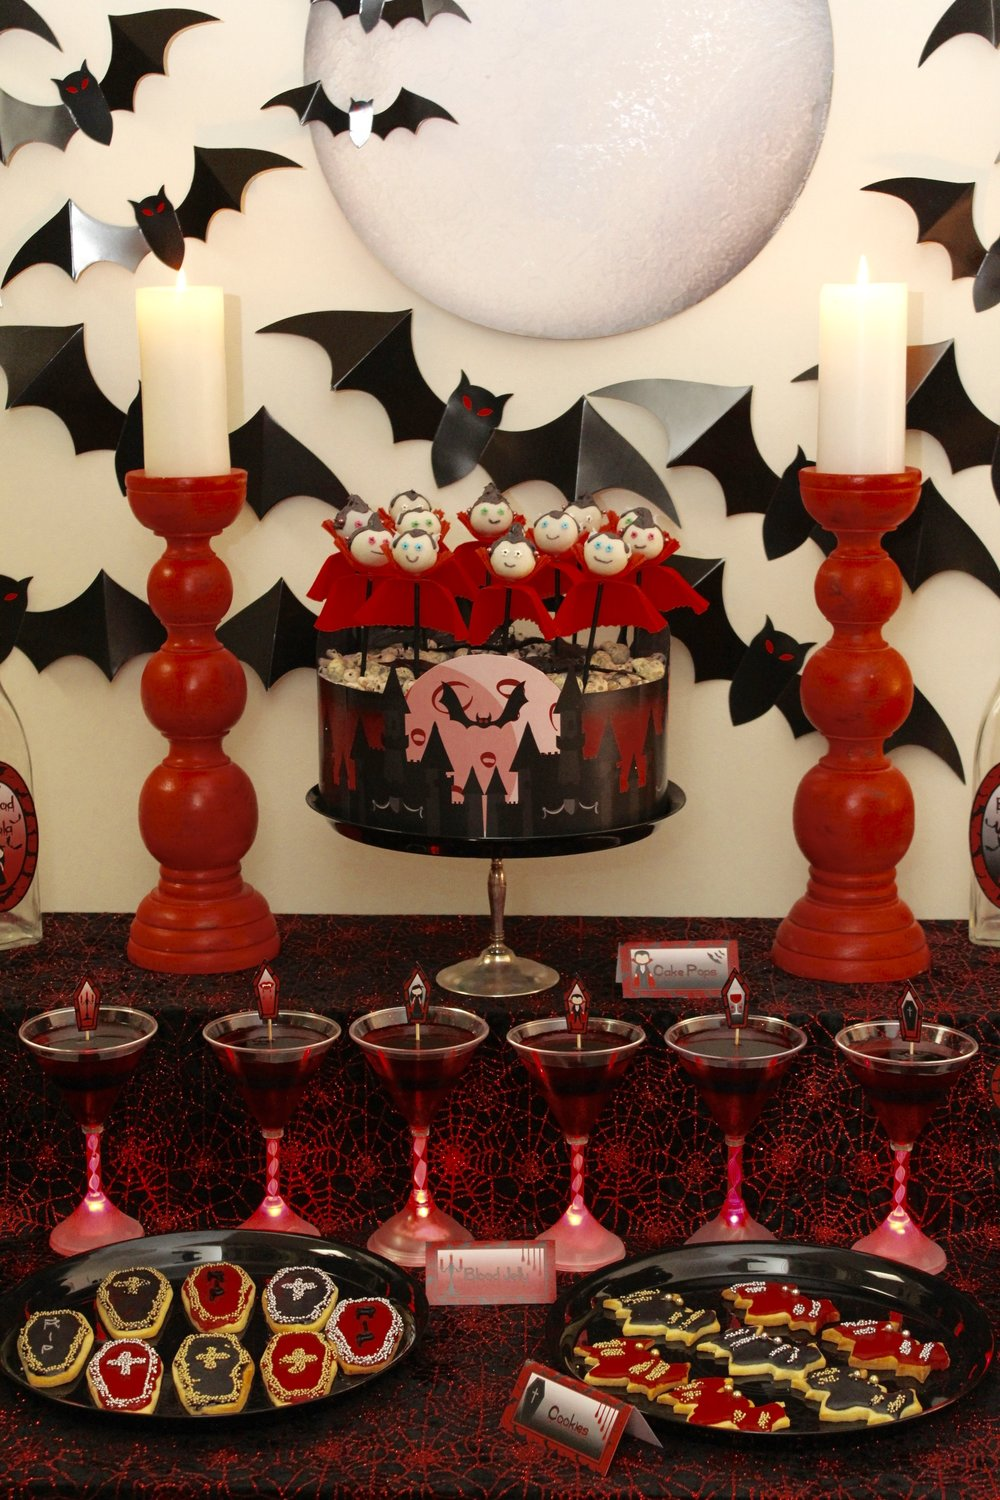 Vampire Cake Pops and Cookies